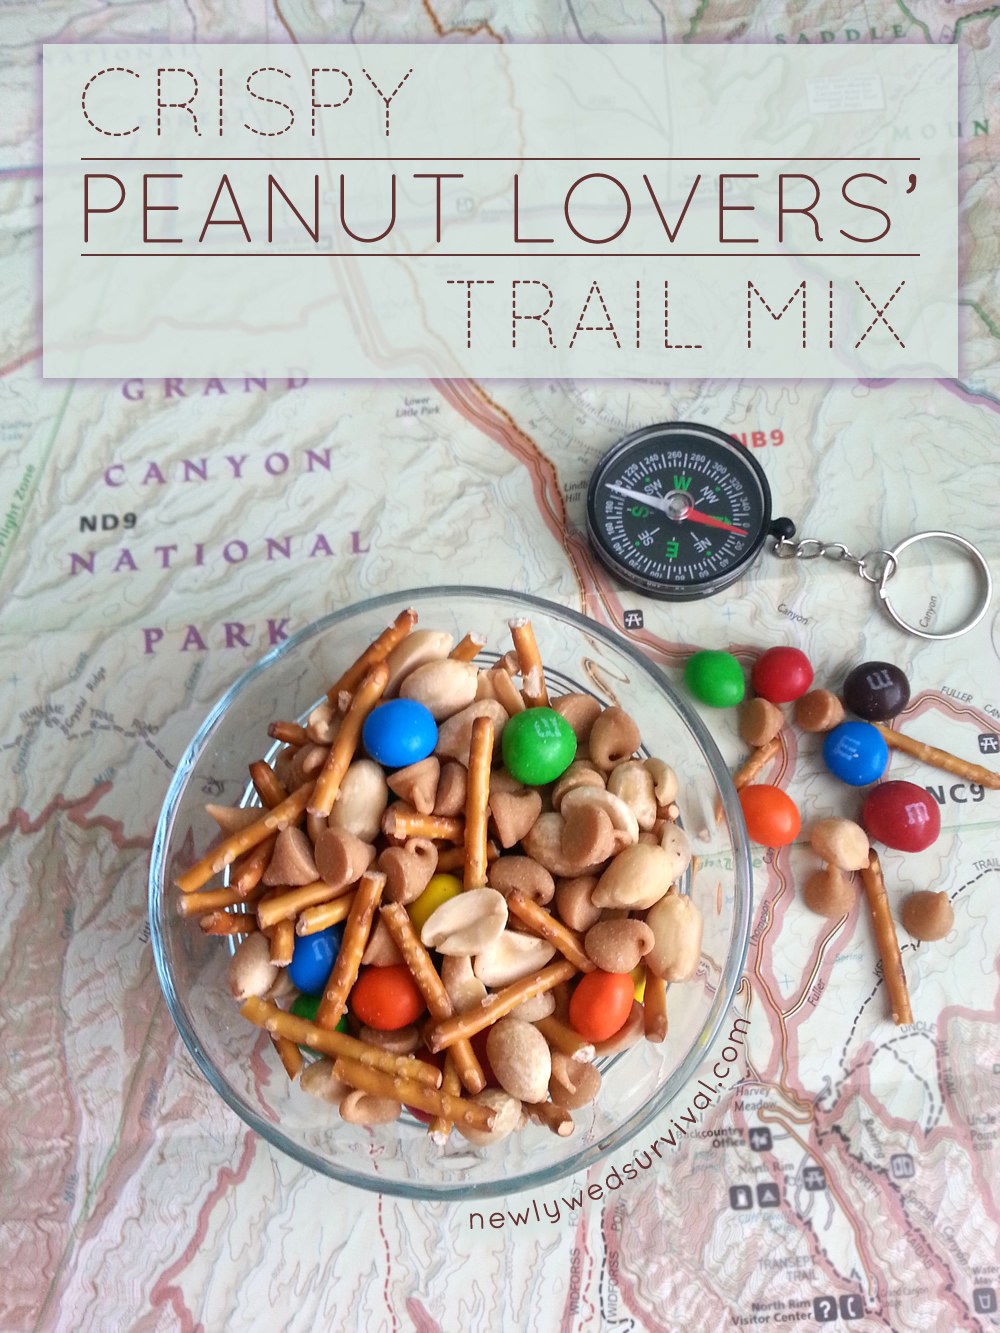 A delicious trail mix recipe for any peanut lover! #CrispyIsBack #ad